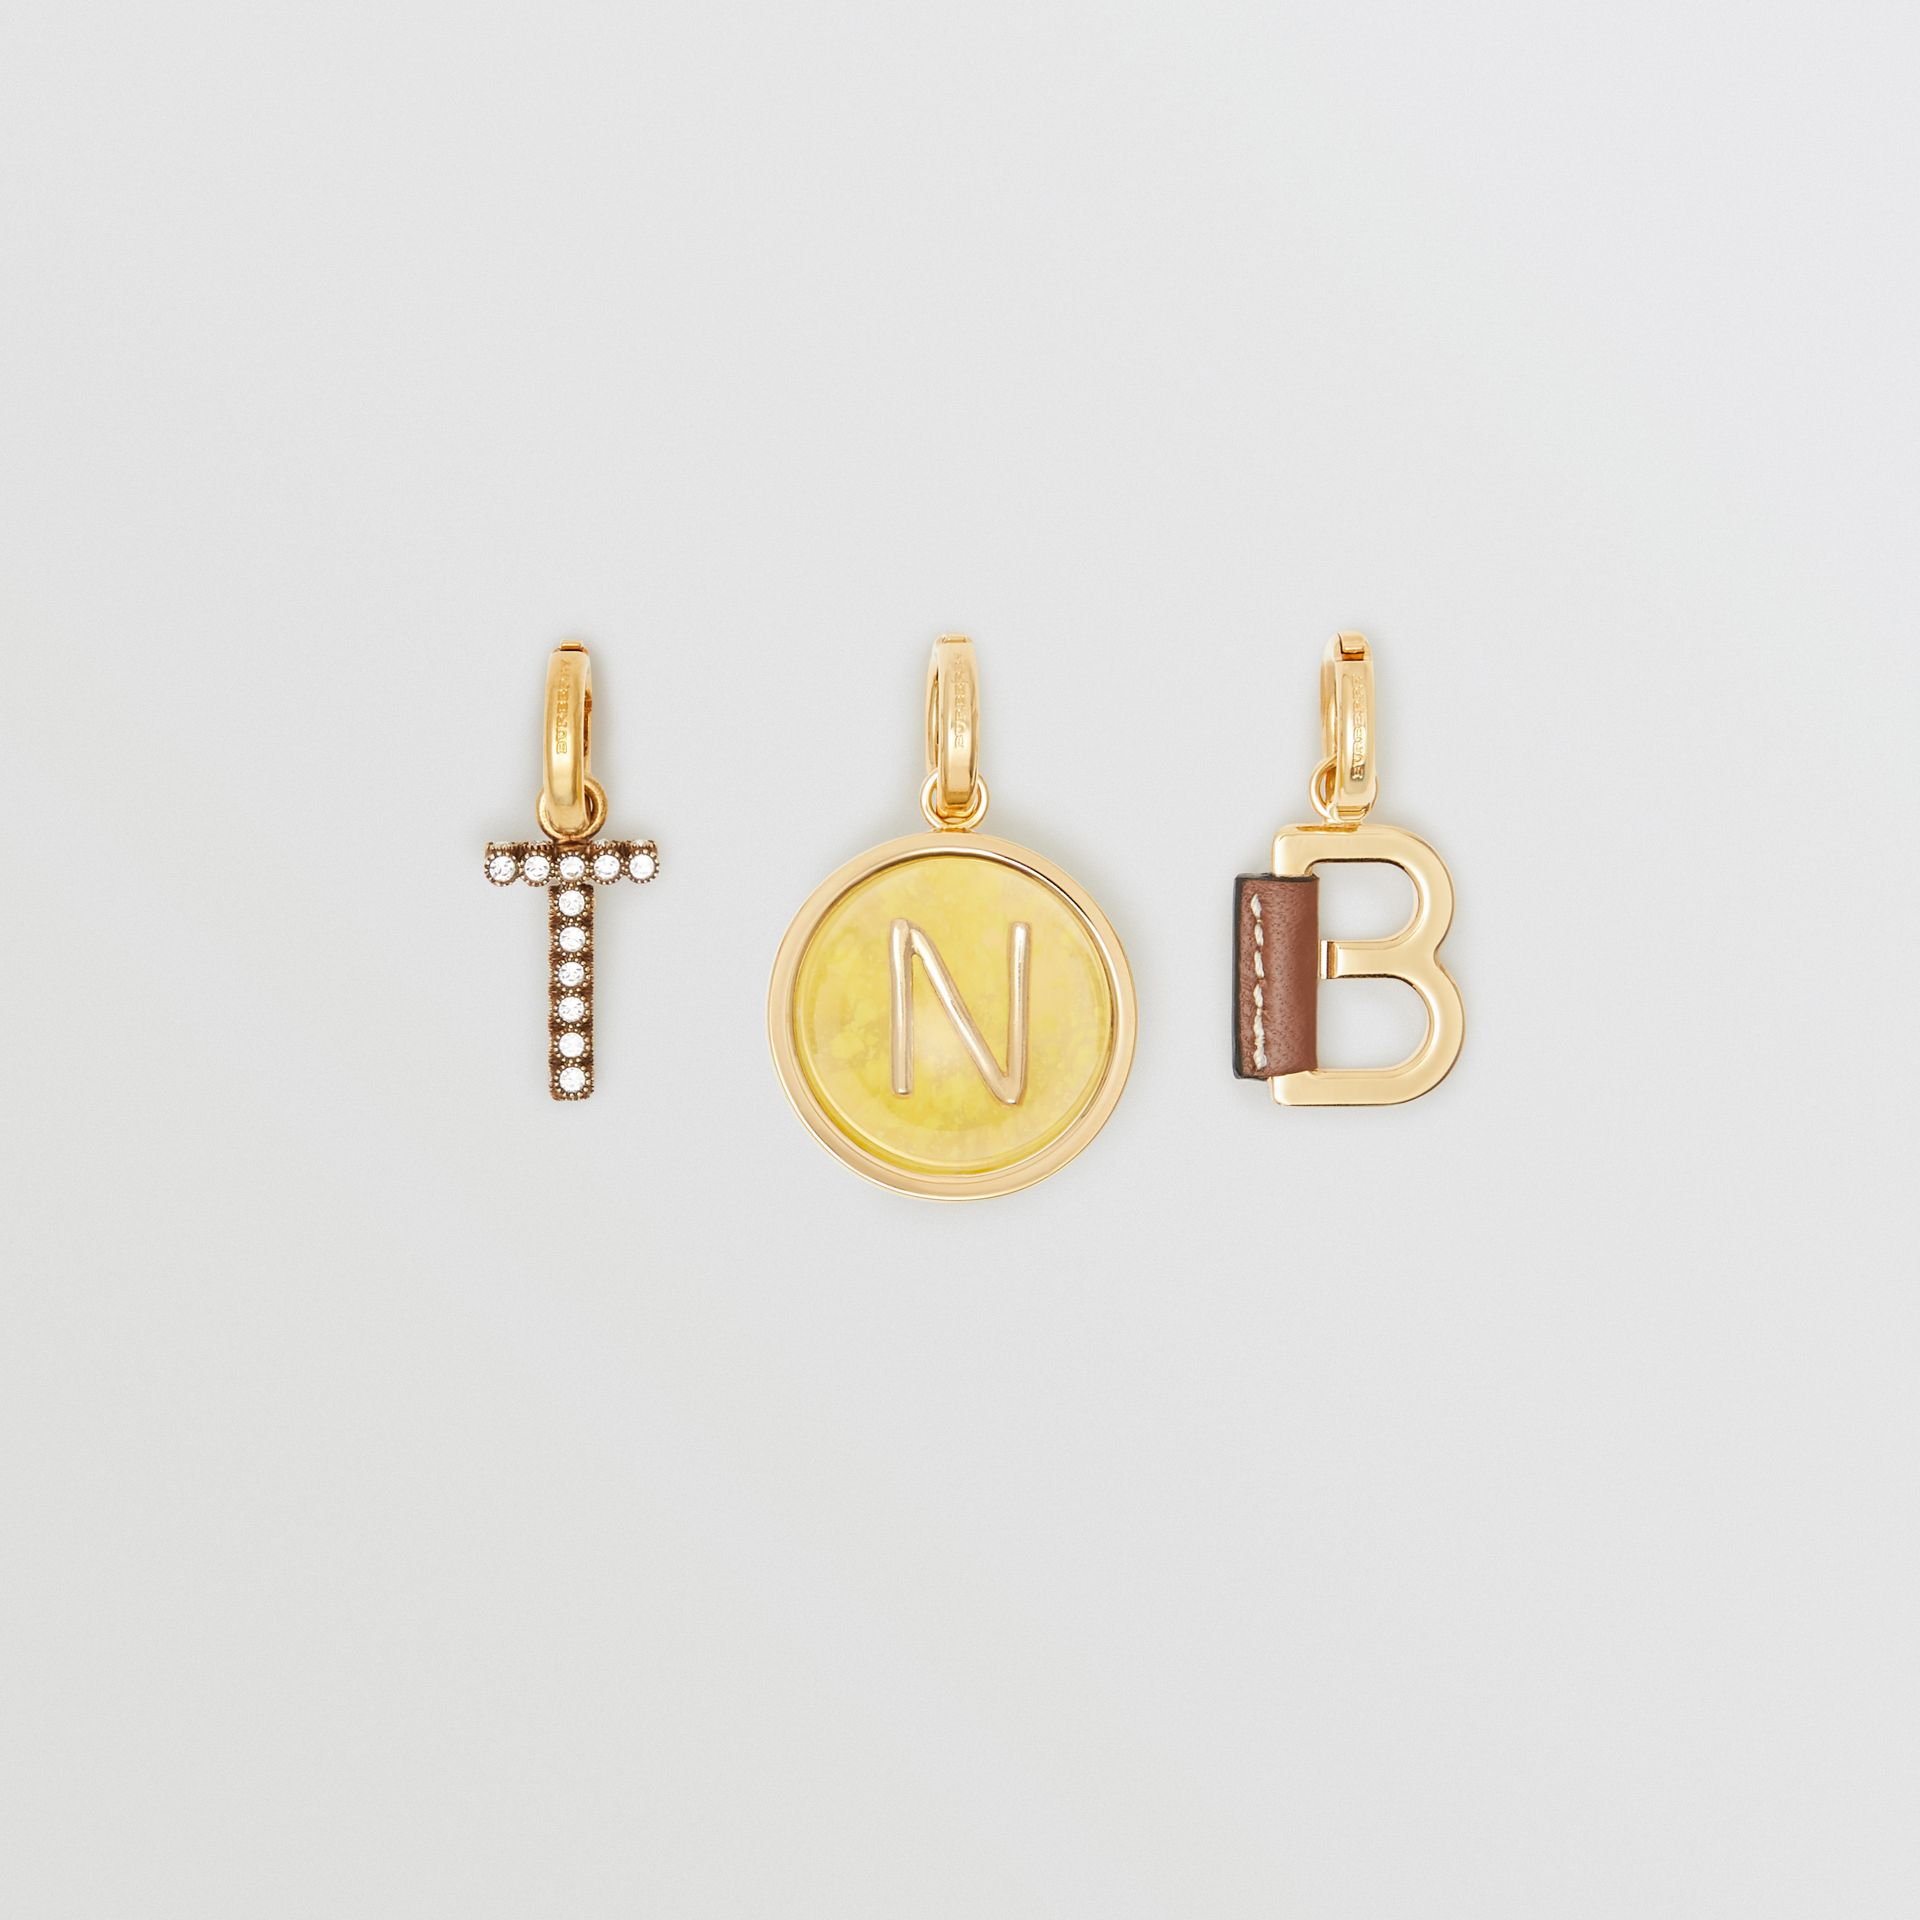 Marbled Resin 'D' Alphabet Charm in Gold/mimosa - Women | Burberry - gallery image 2